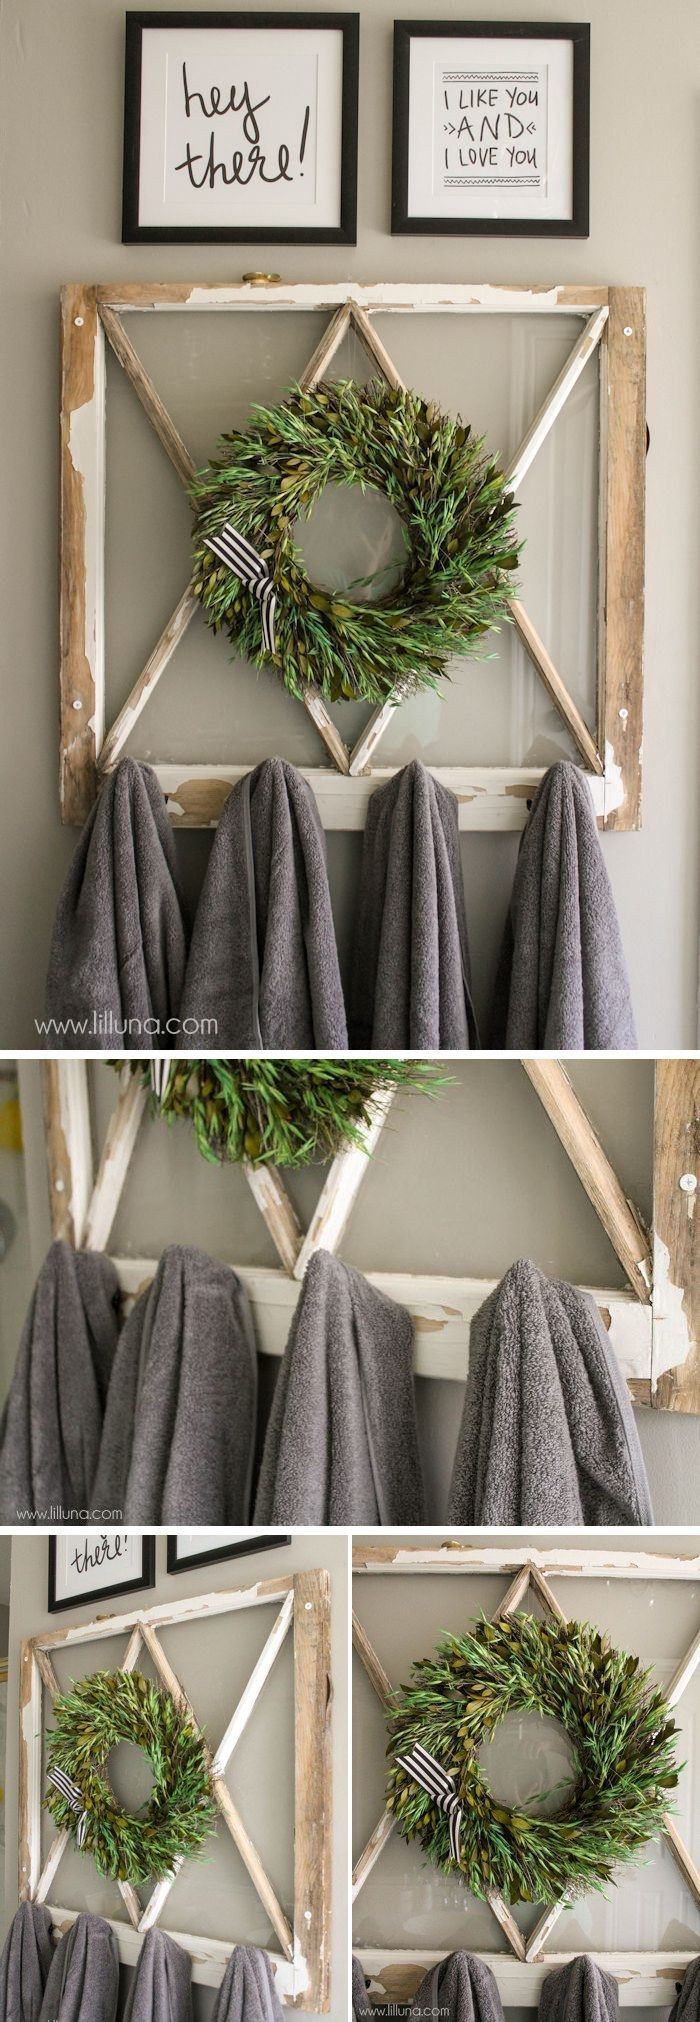 DIY Vintage Window Towel Holder